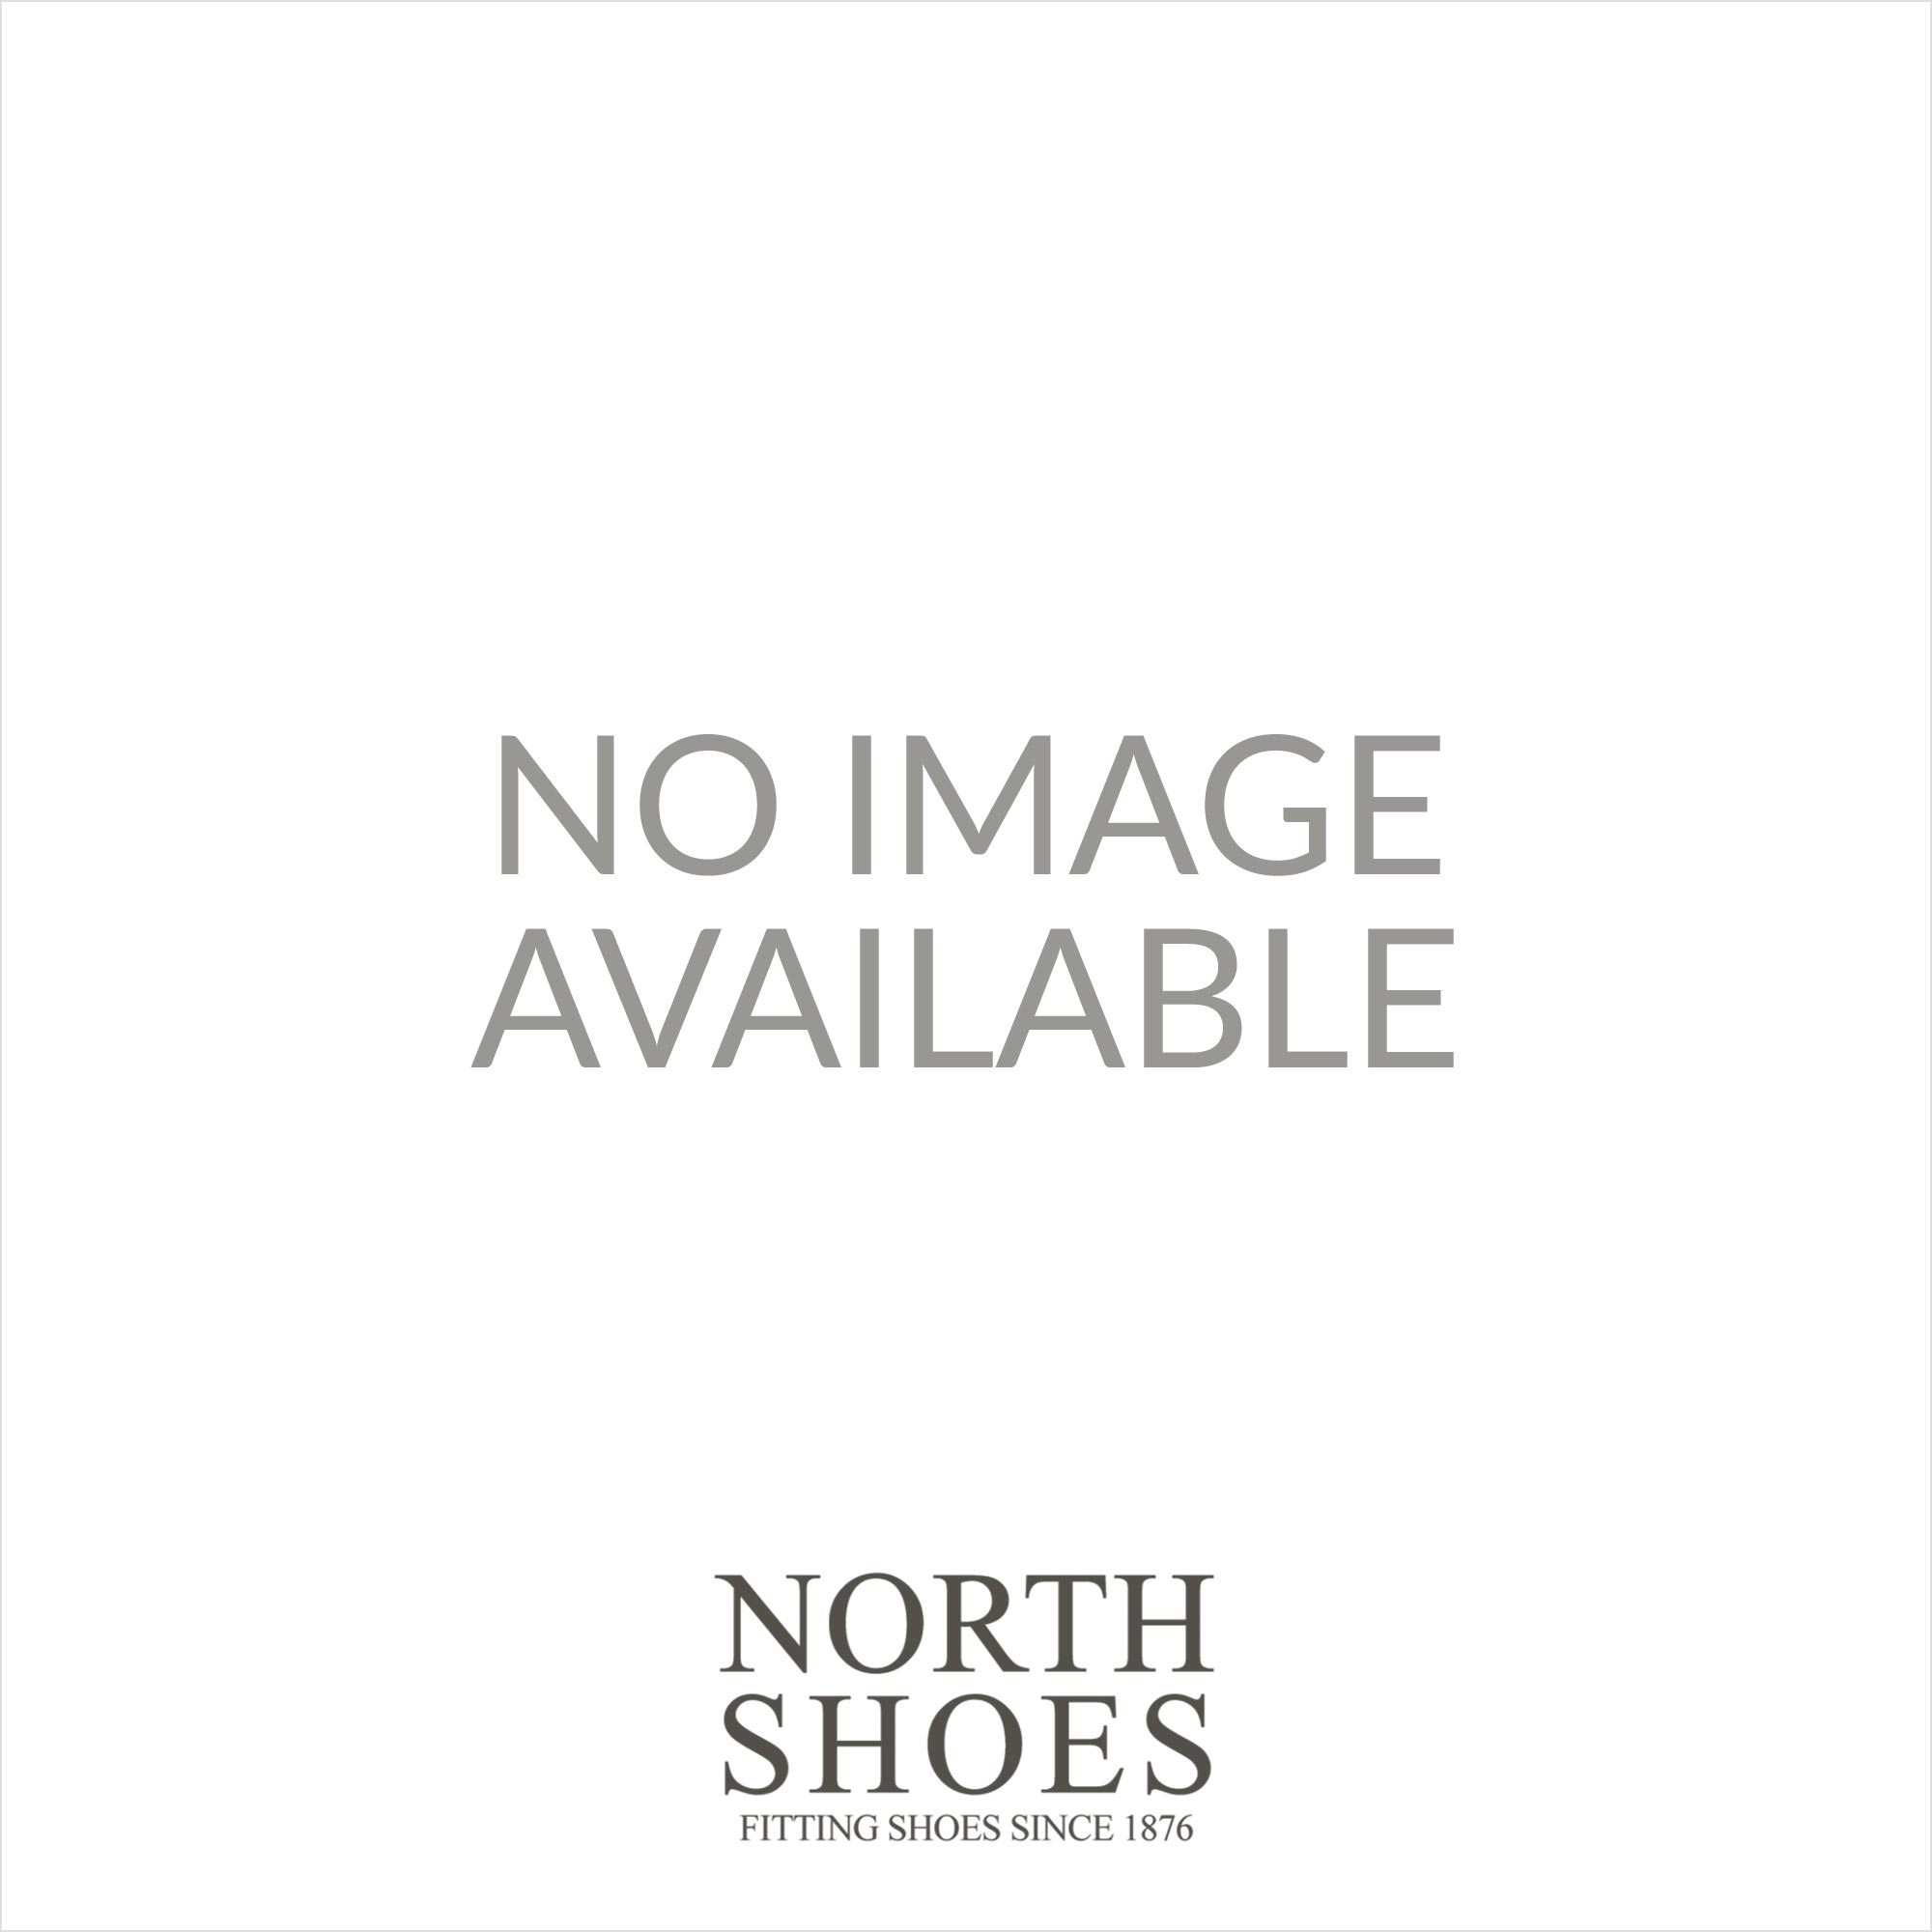 adf81388885 Toni Pons Teide-P Metallic Silver Leather Womens Wedge Pull On Espadrille  Sandals